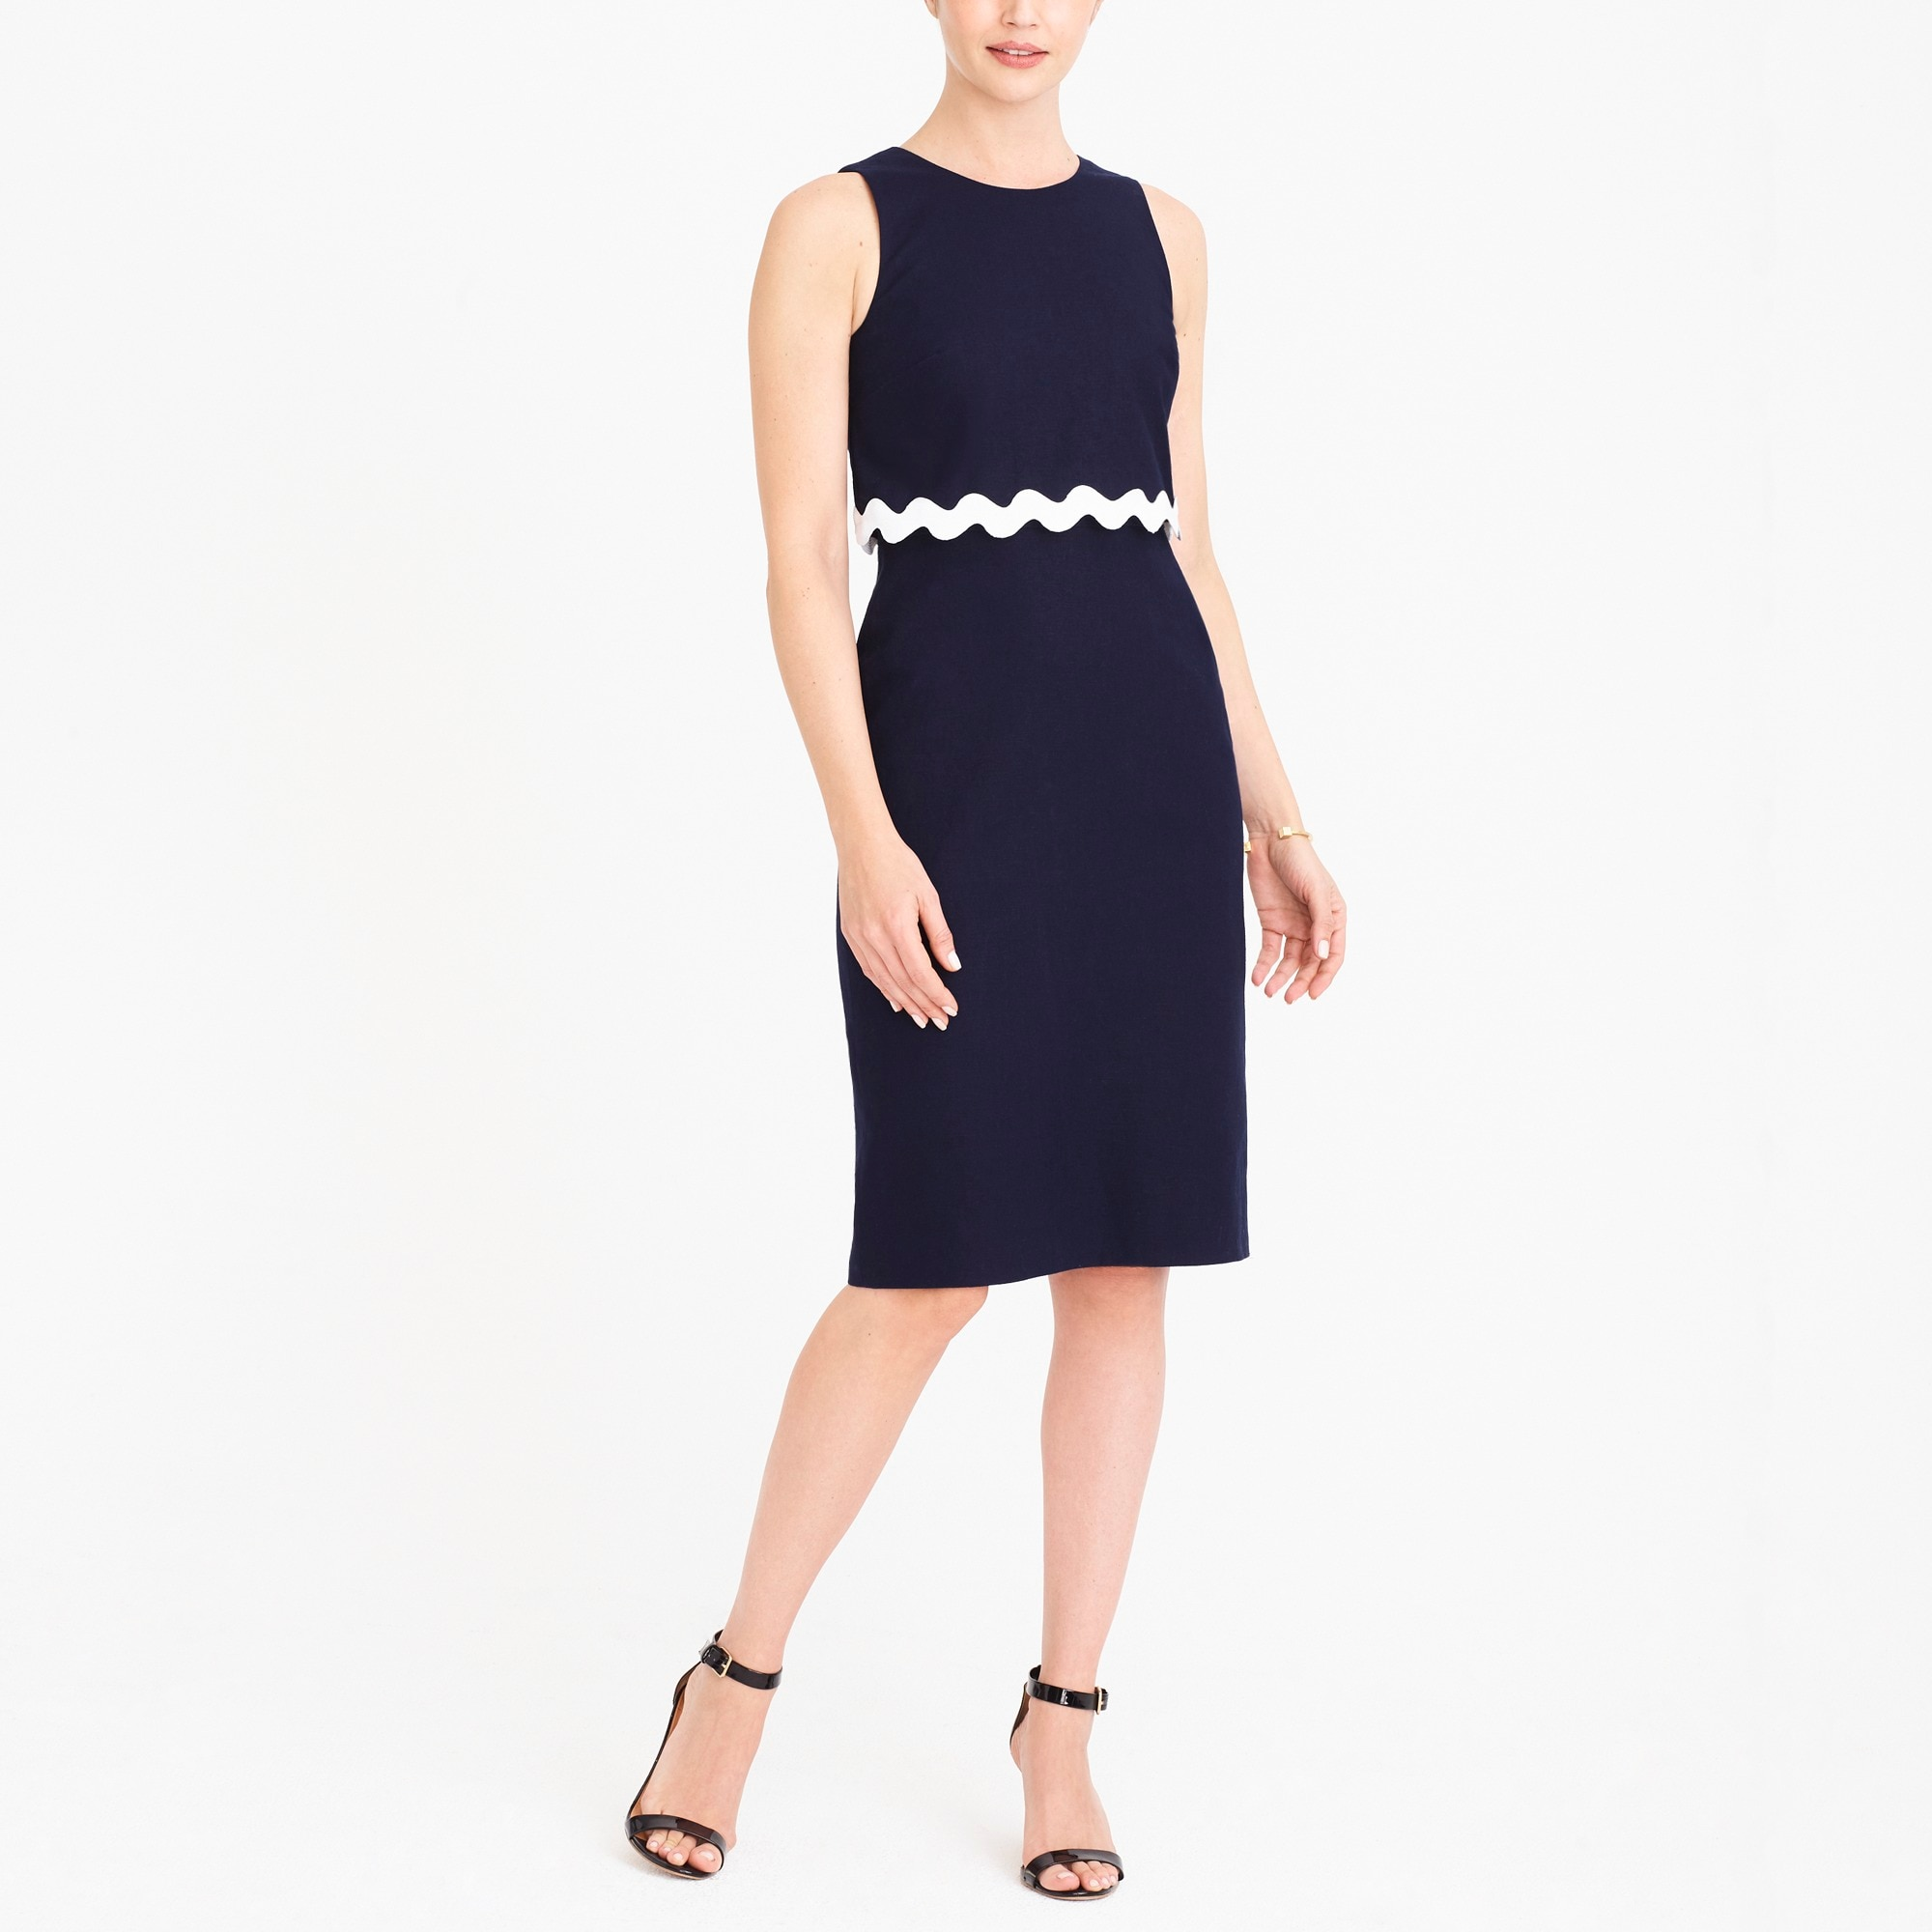 Rickrack trim dress